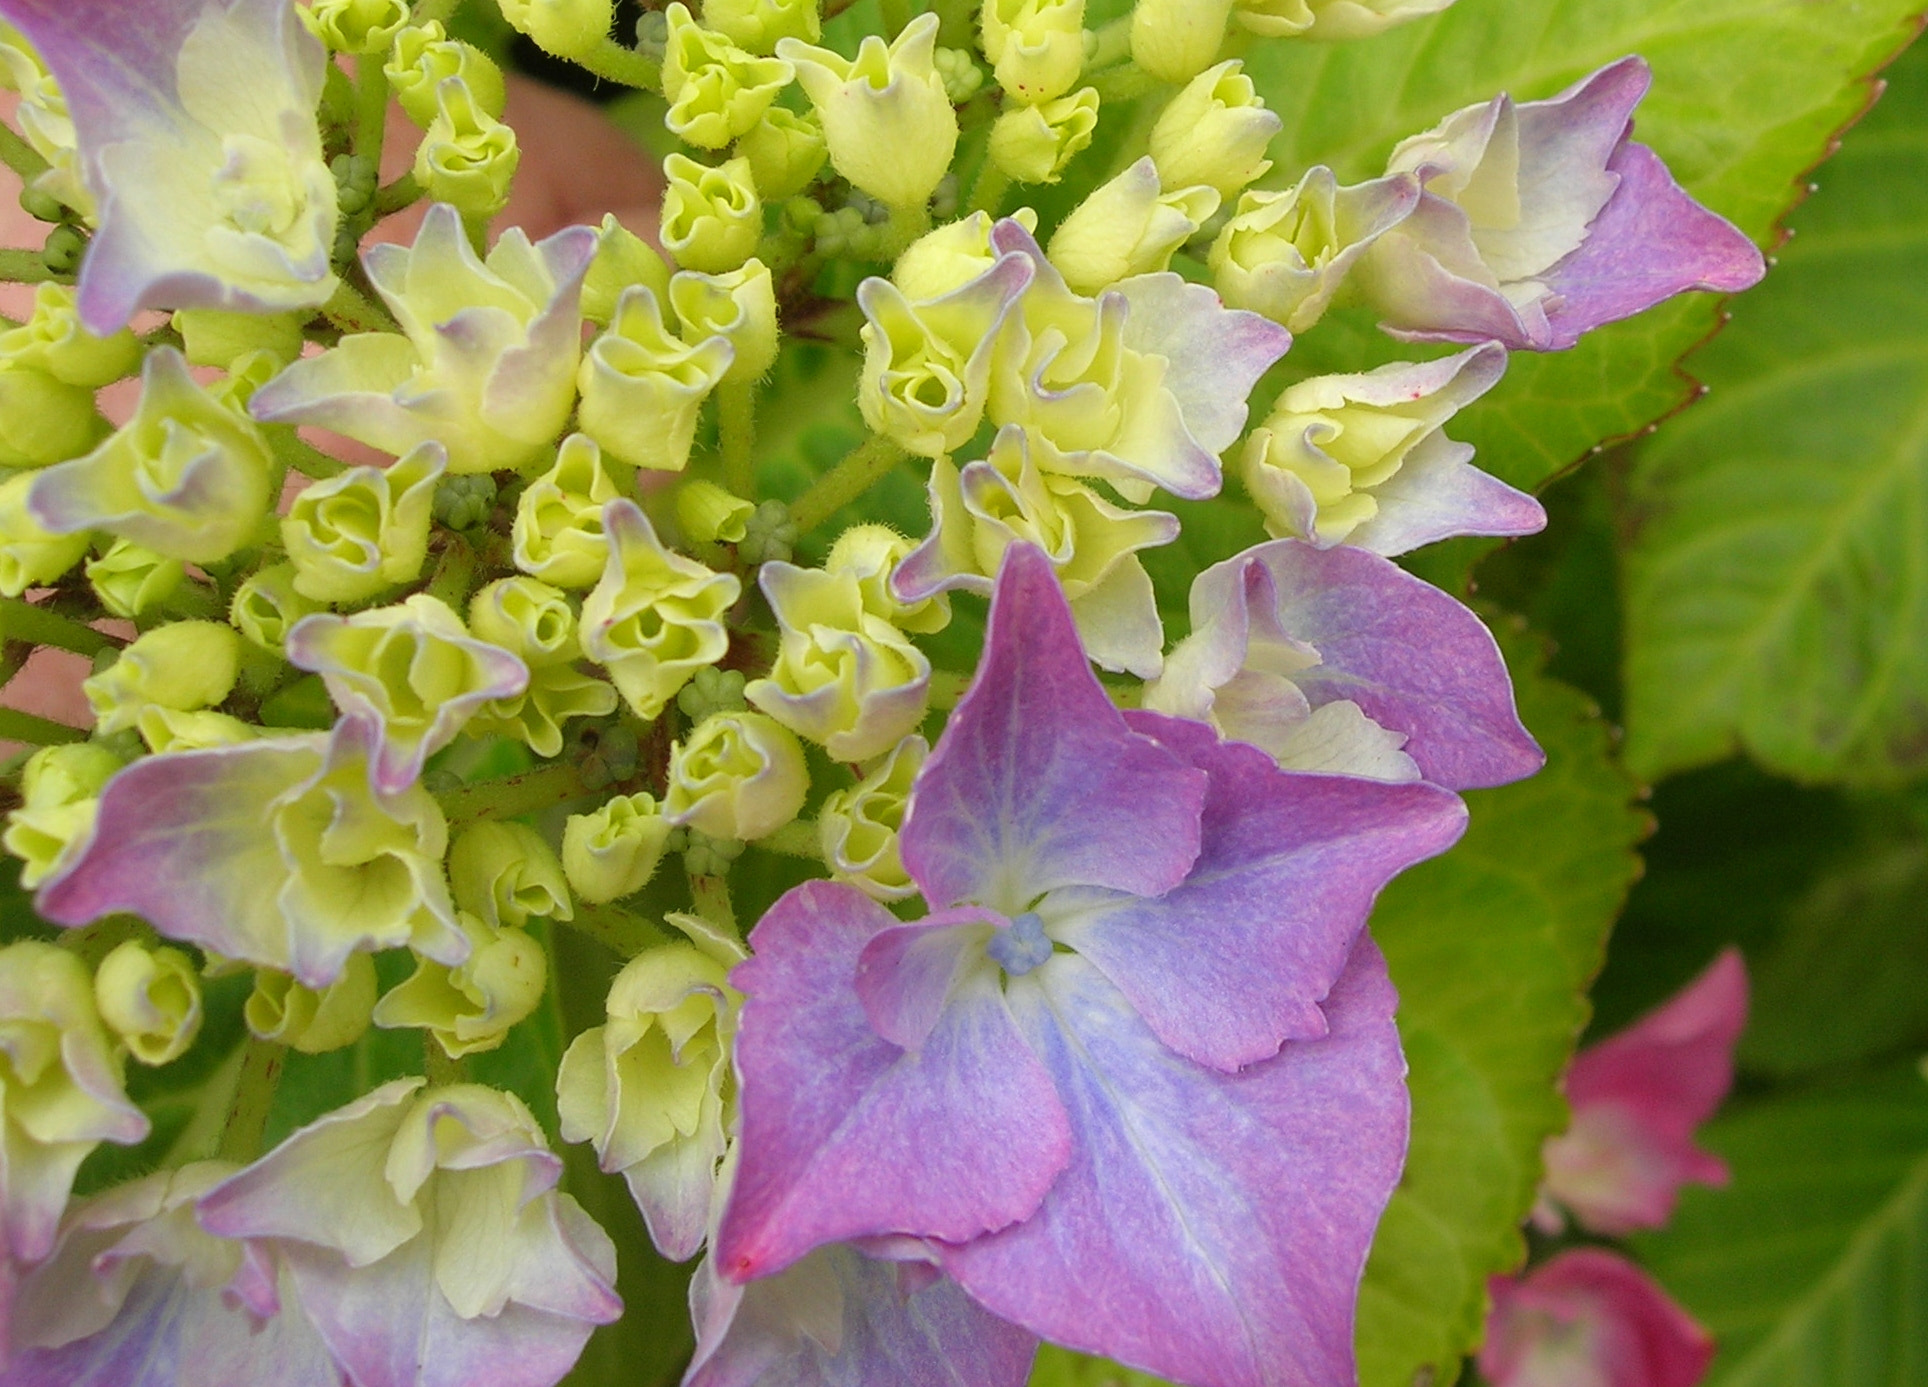 Photograph Hydrangea 'Lace Cap' by Linda Foakes on 500px